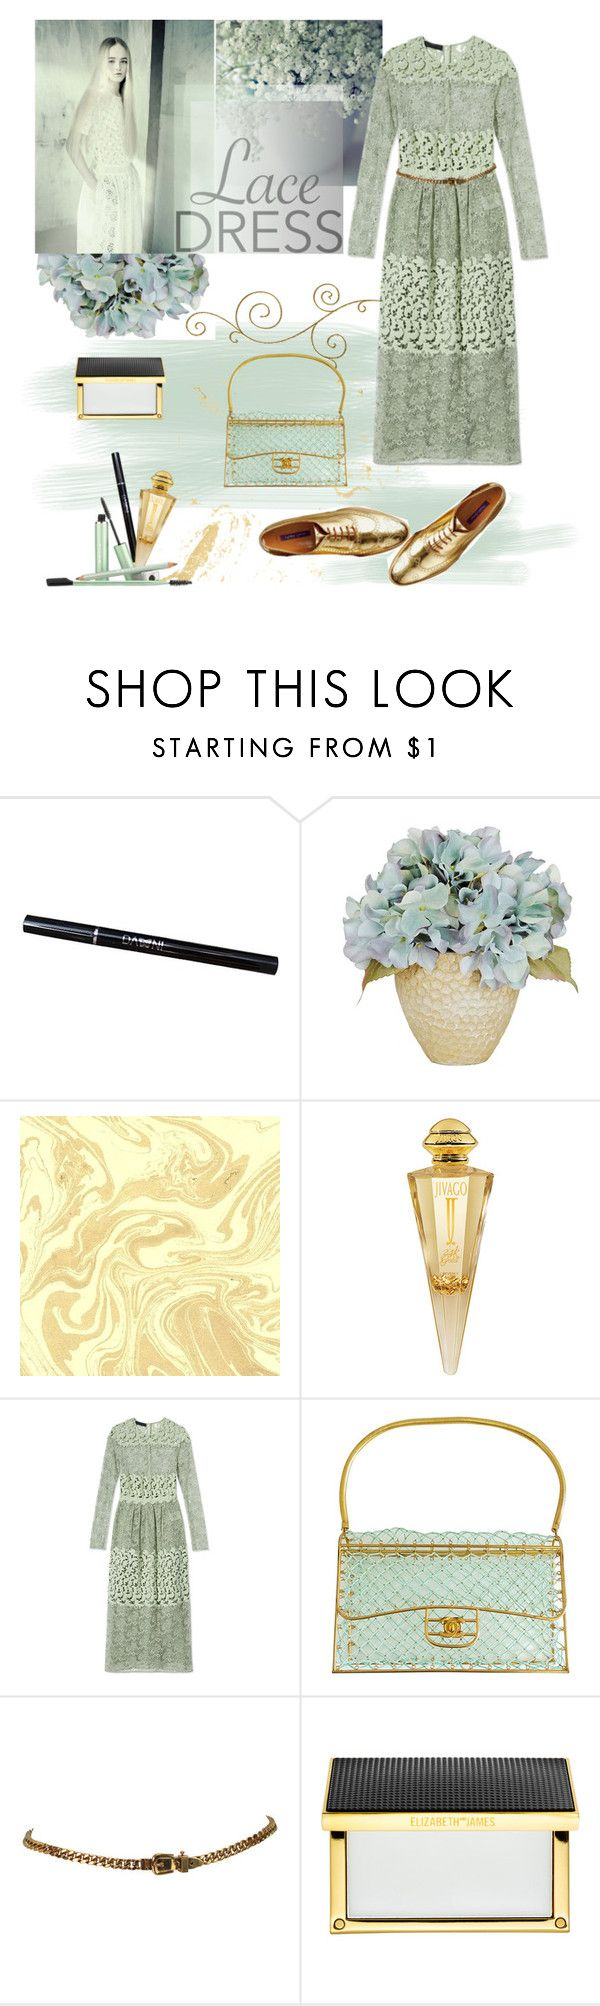 """lace dream"" by iraavalon ❤ liked on Polyvore featuring mode, Jivago, Burberry, Chanel, Elizabeth and James, Mally et lacedress"